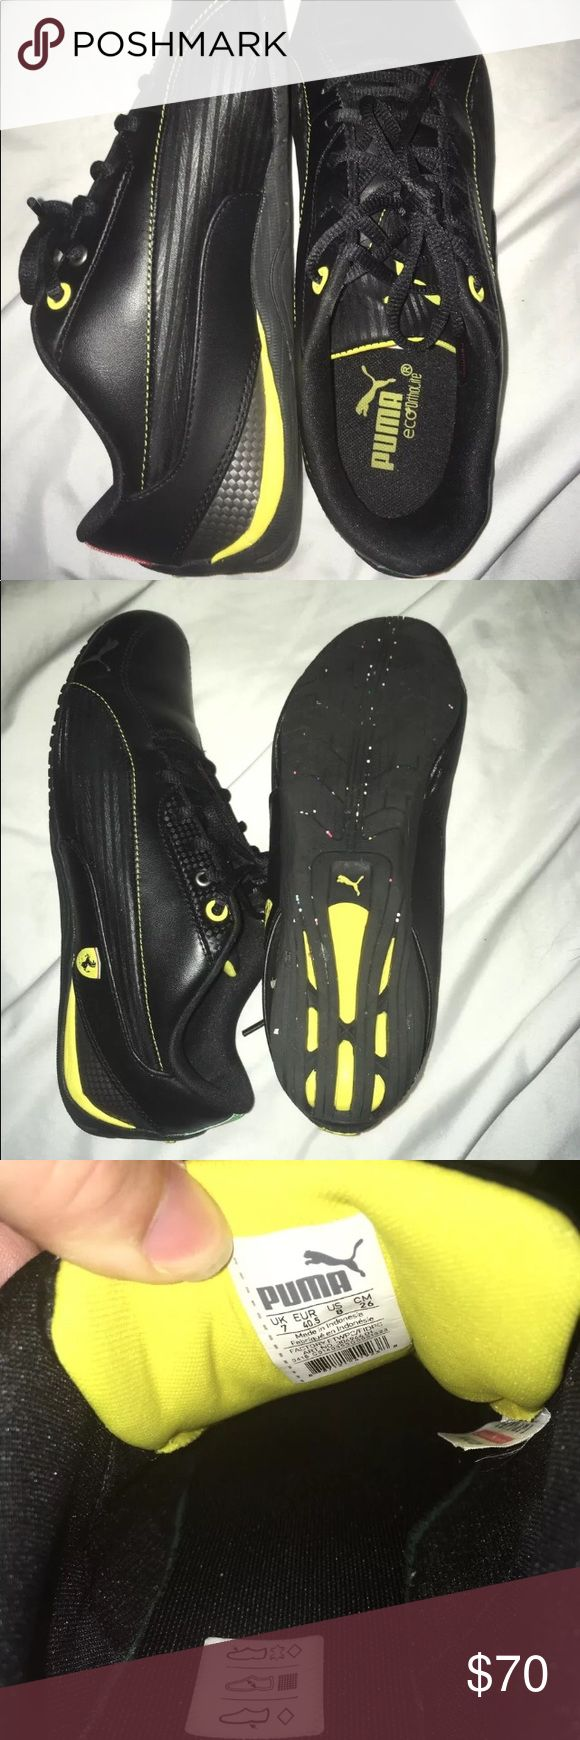 Men's Puma Ferrari Black Yellow Drift Cat sz 8 BMWT Men's Puma Ferrari Sneakers Shoes Black And Yellow Drift Cat size 8 ***Brand new worn once to try on (that's why there's stuff in the sole grips)*** Puma Shoes Sneakers